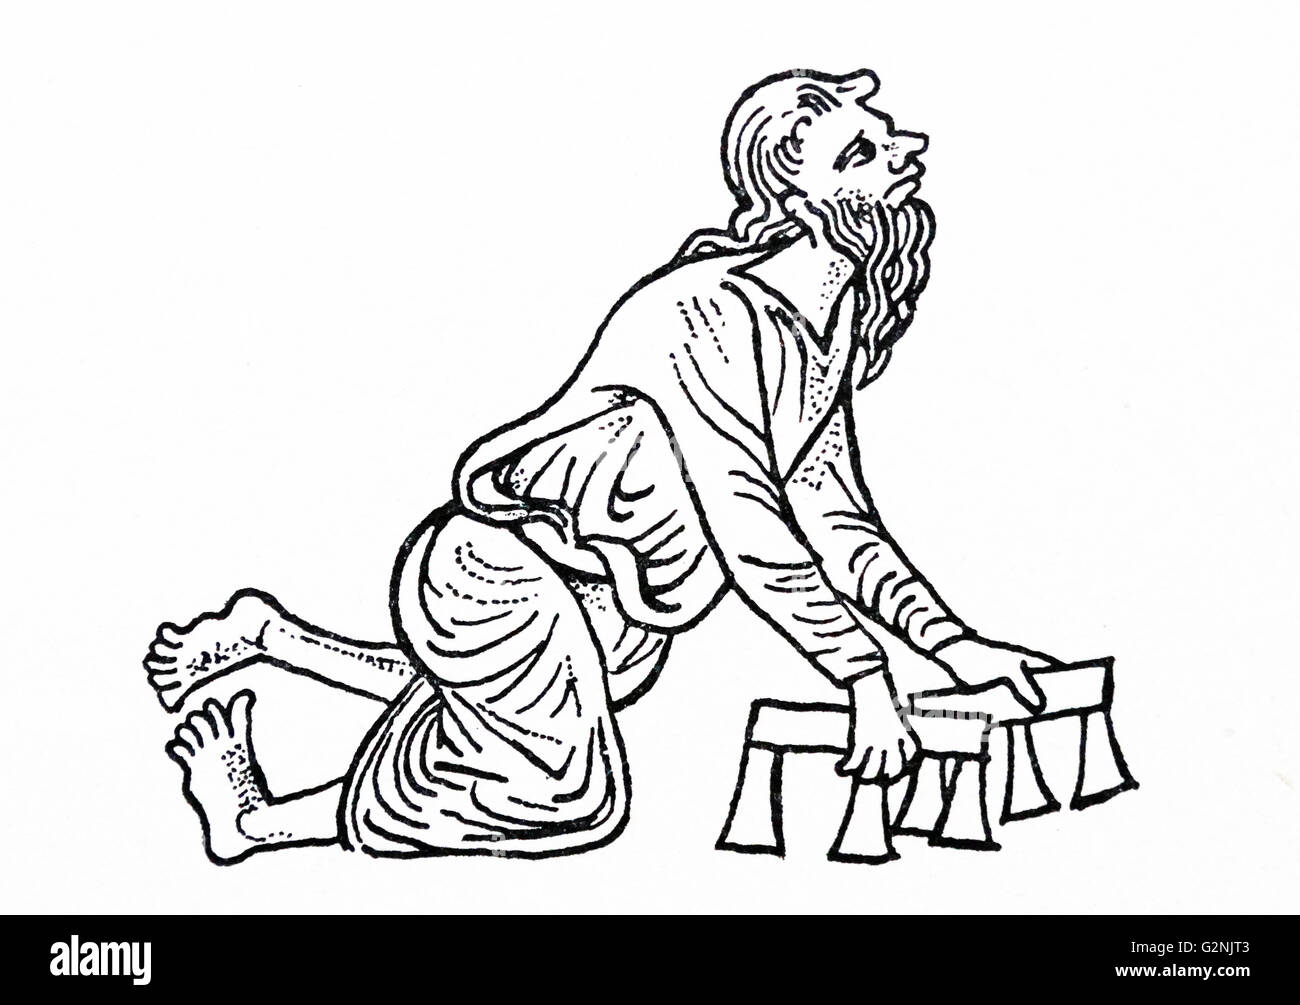 Illustration of a man with a deformed foot and crude crutches - Stock Image